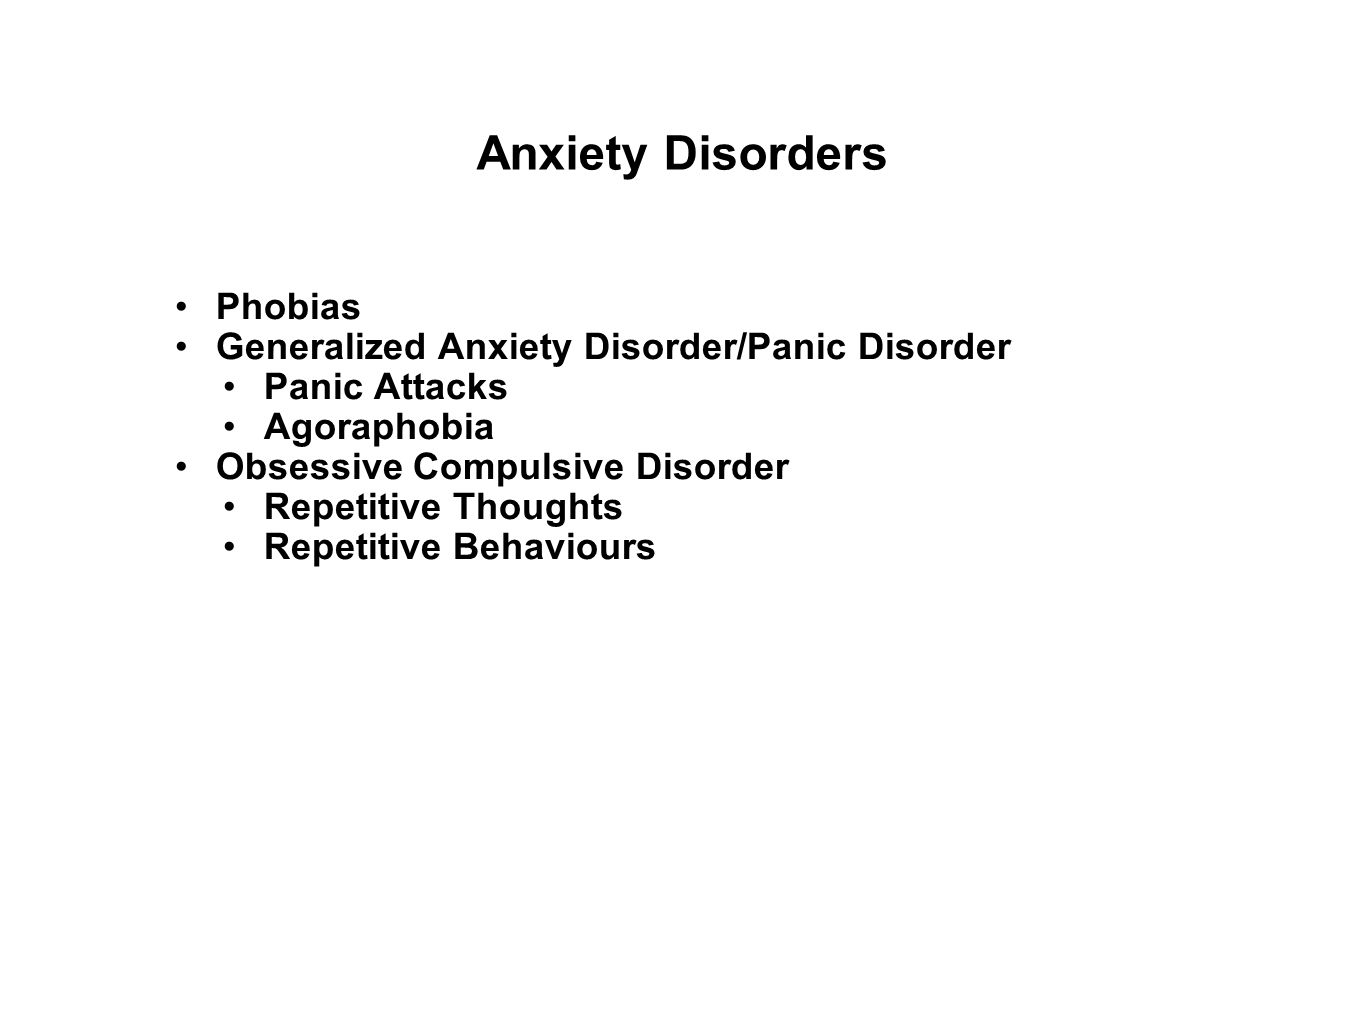 Anxiety Disorders Phobias Generalized Anxiety Disorder/Panic Disorder Panic Attacks Agoraphobia Obsessive Compulsive Disorder Repetitive Thoughts Repetitive Behaviours